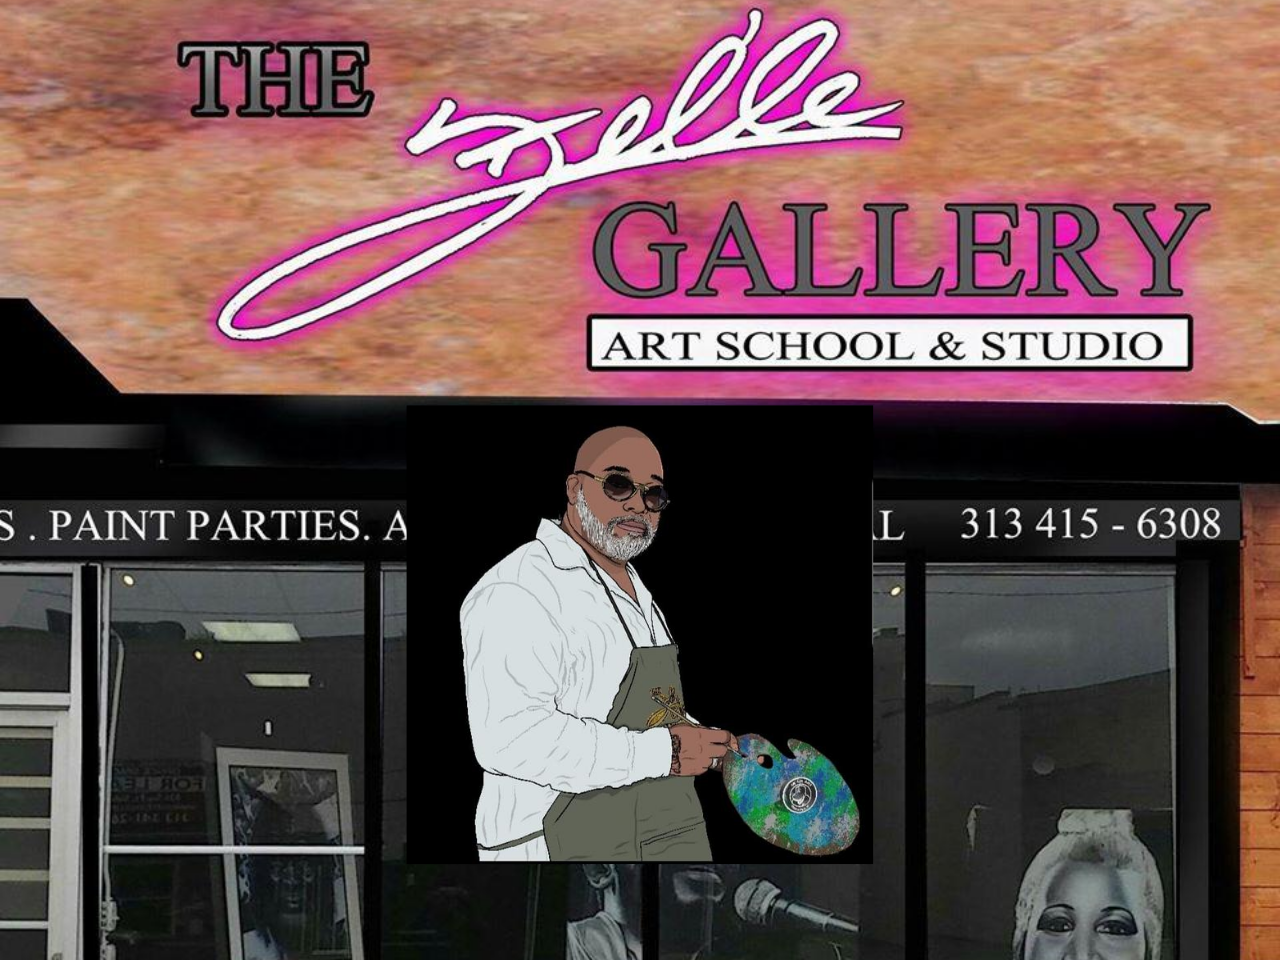 The Felle Gallery